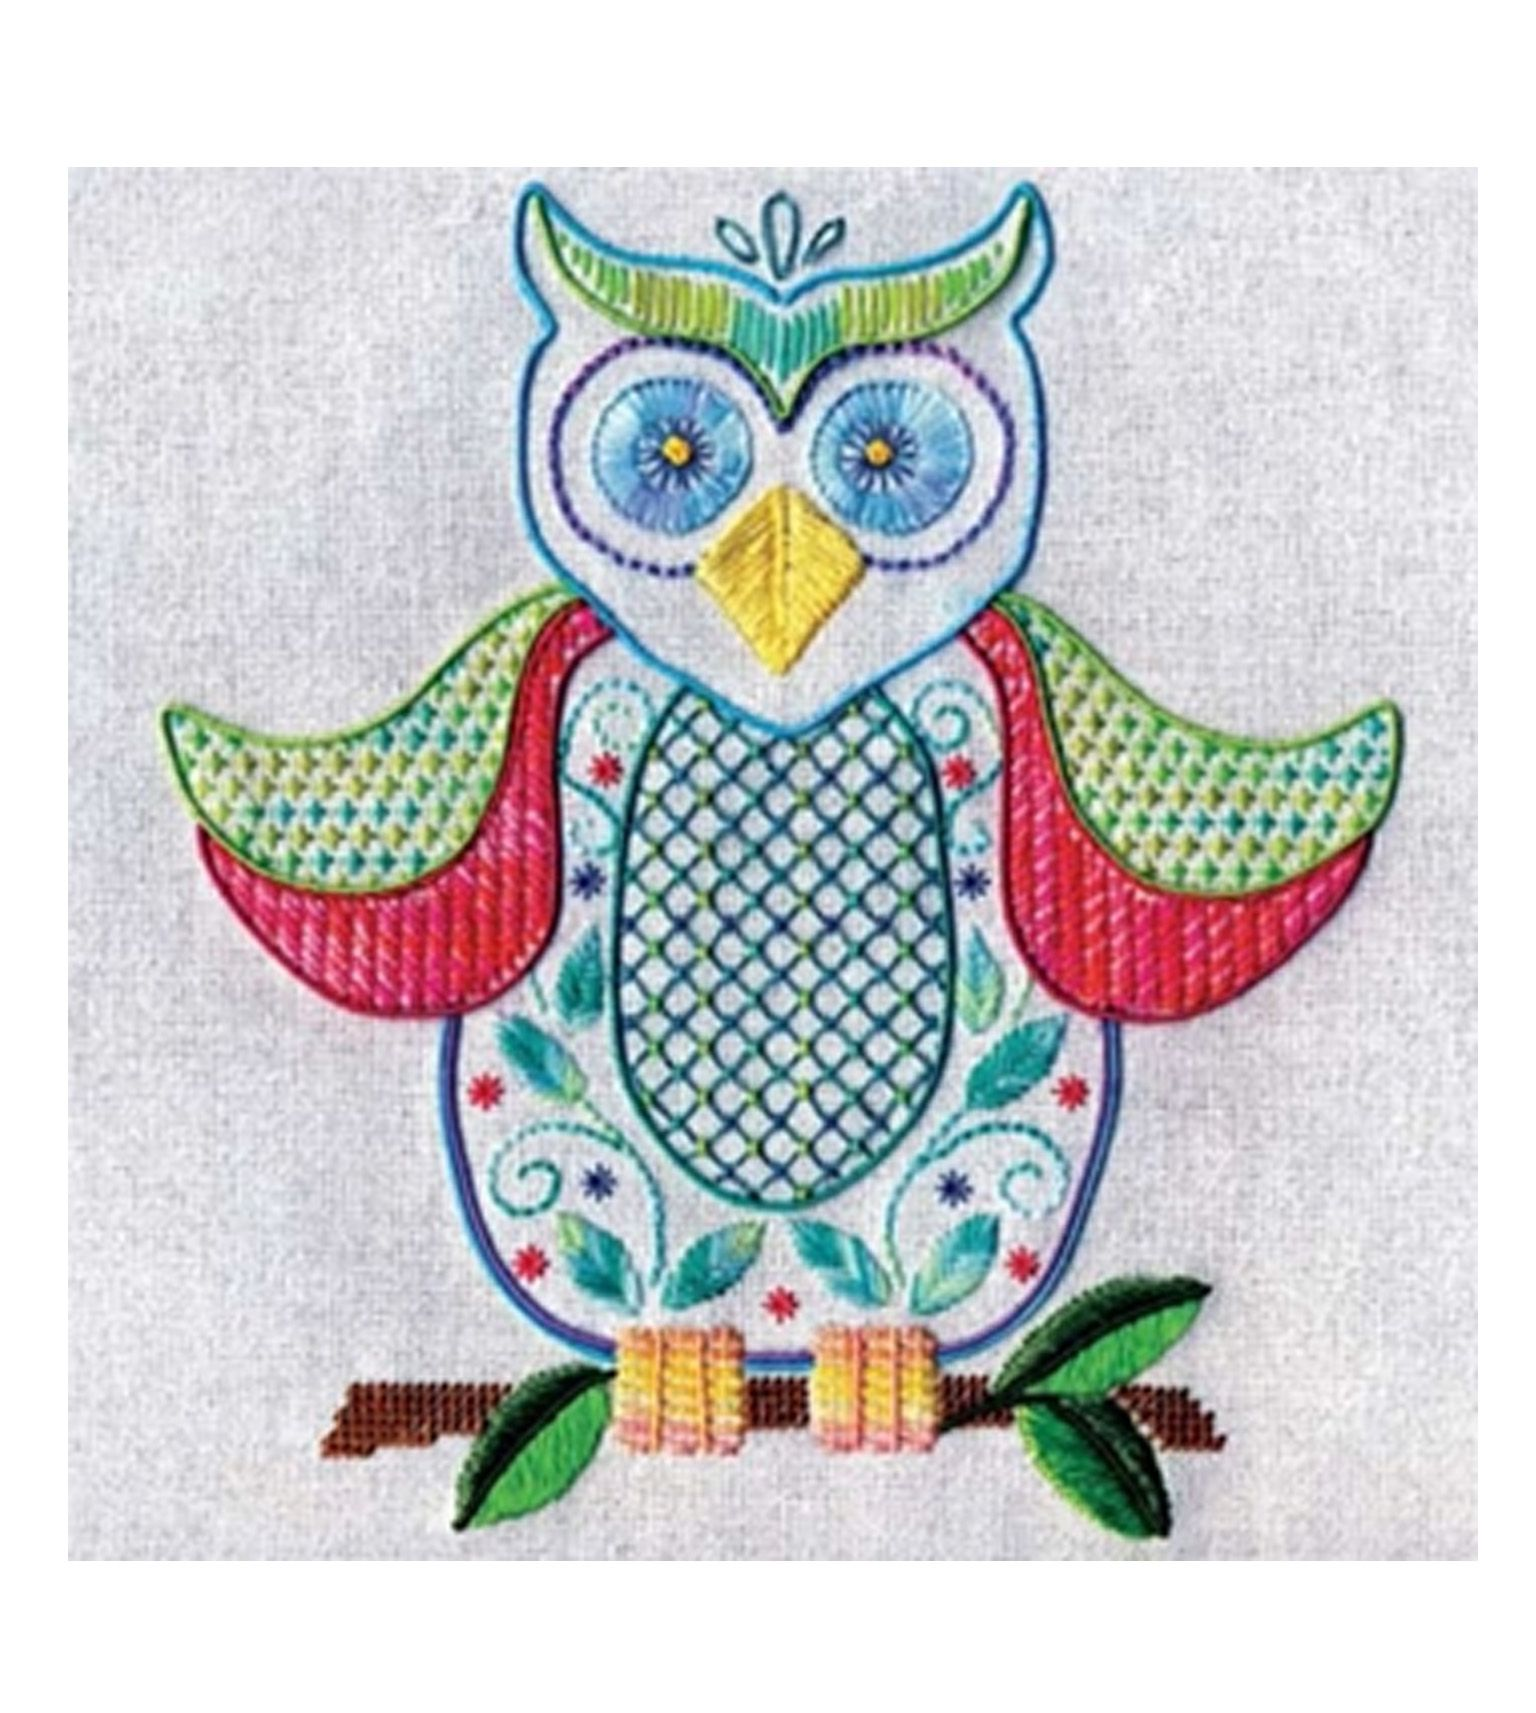 Owl embroidery pattern download free project here httpdmc usa explore owl embroidery embroidery patterns and more bankloansurffo Image collections